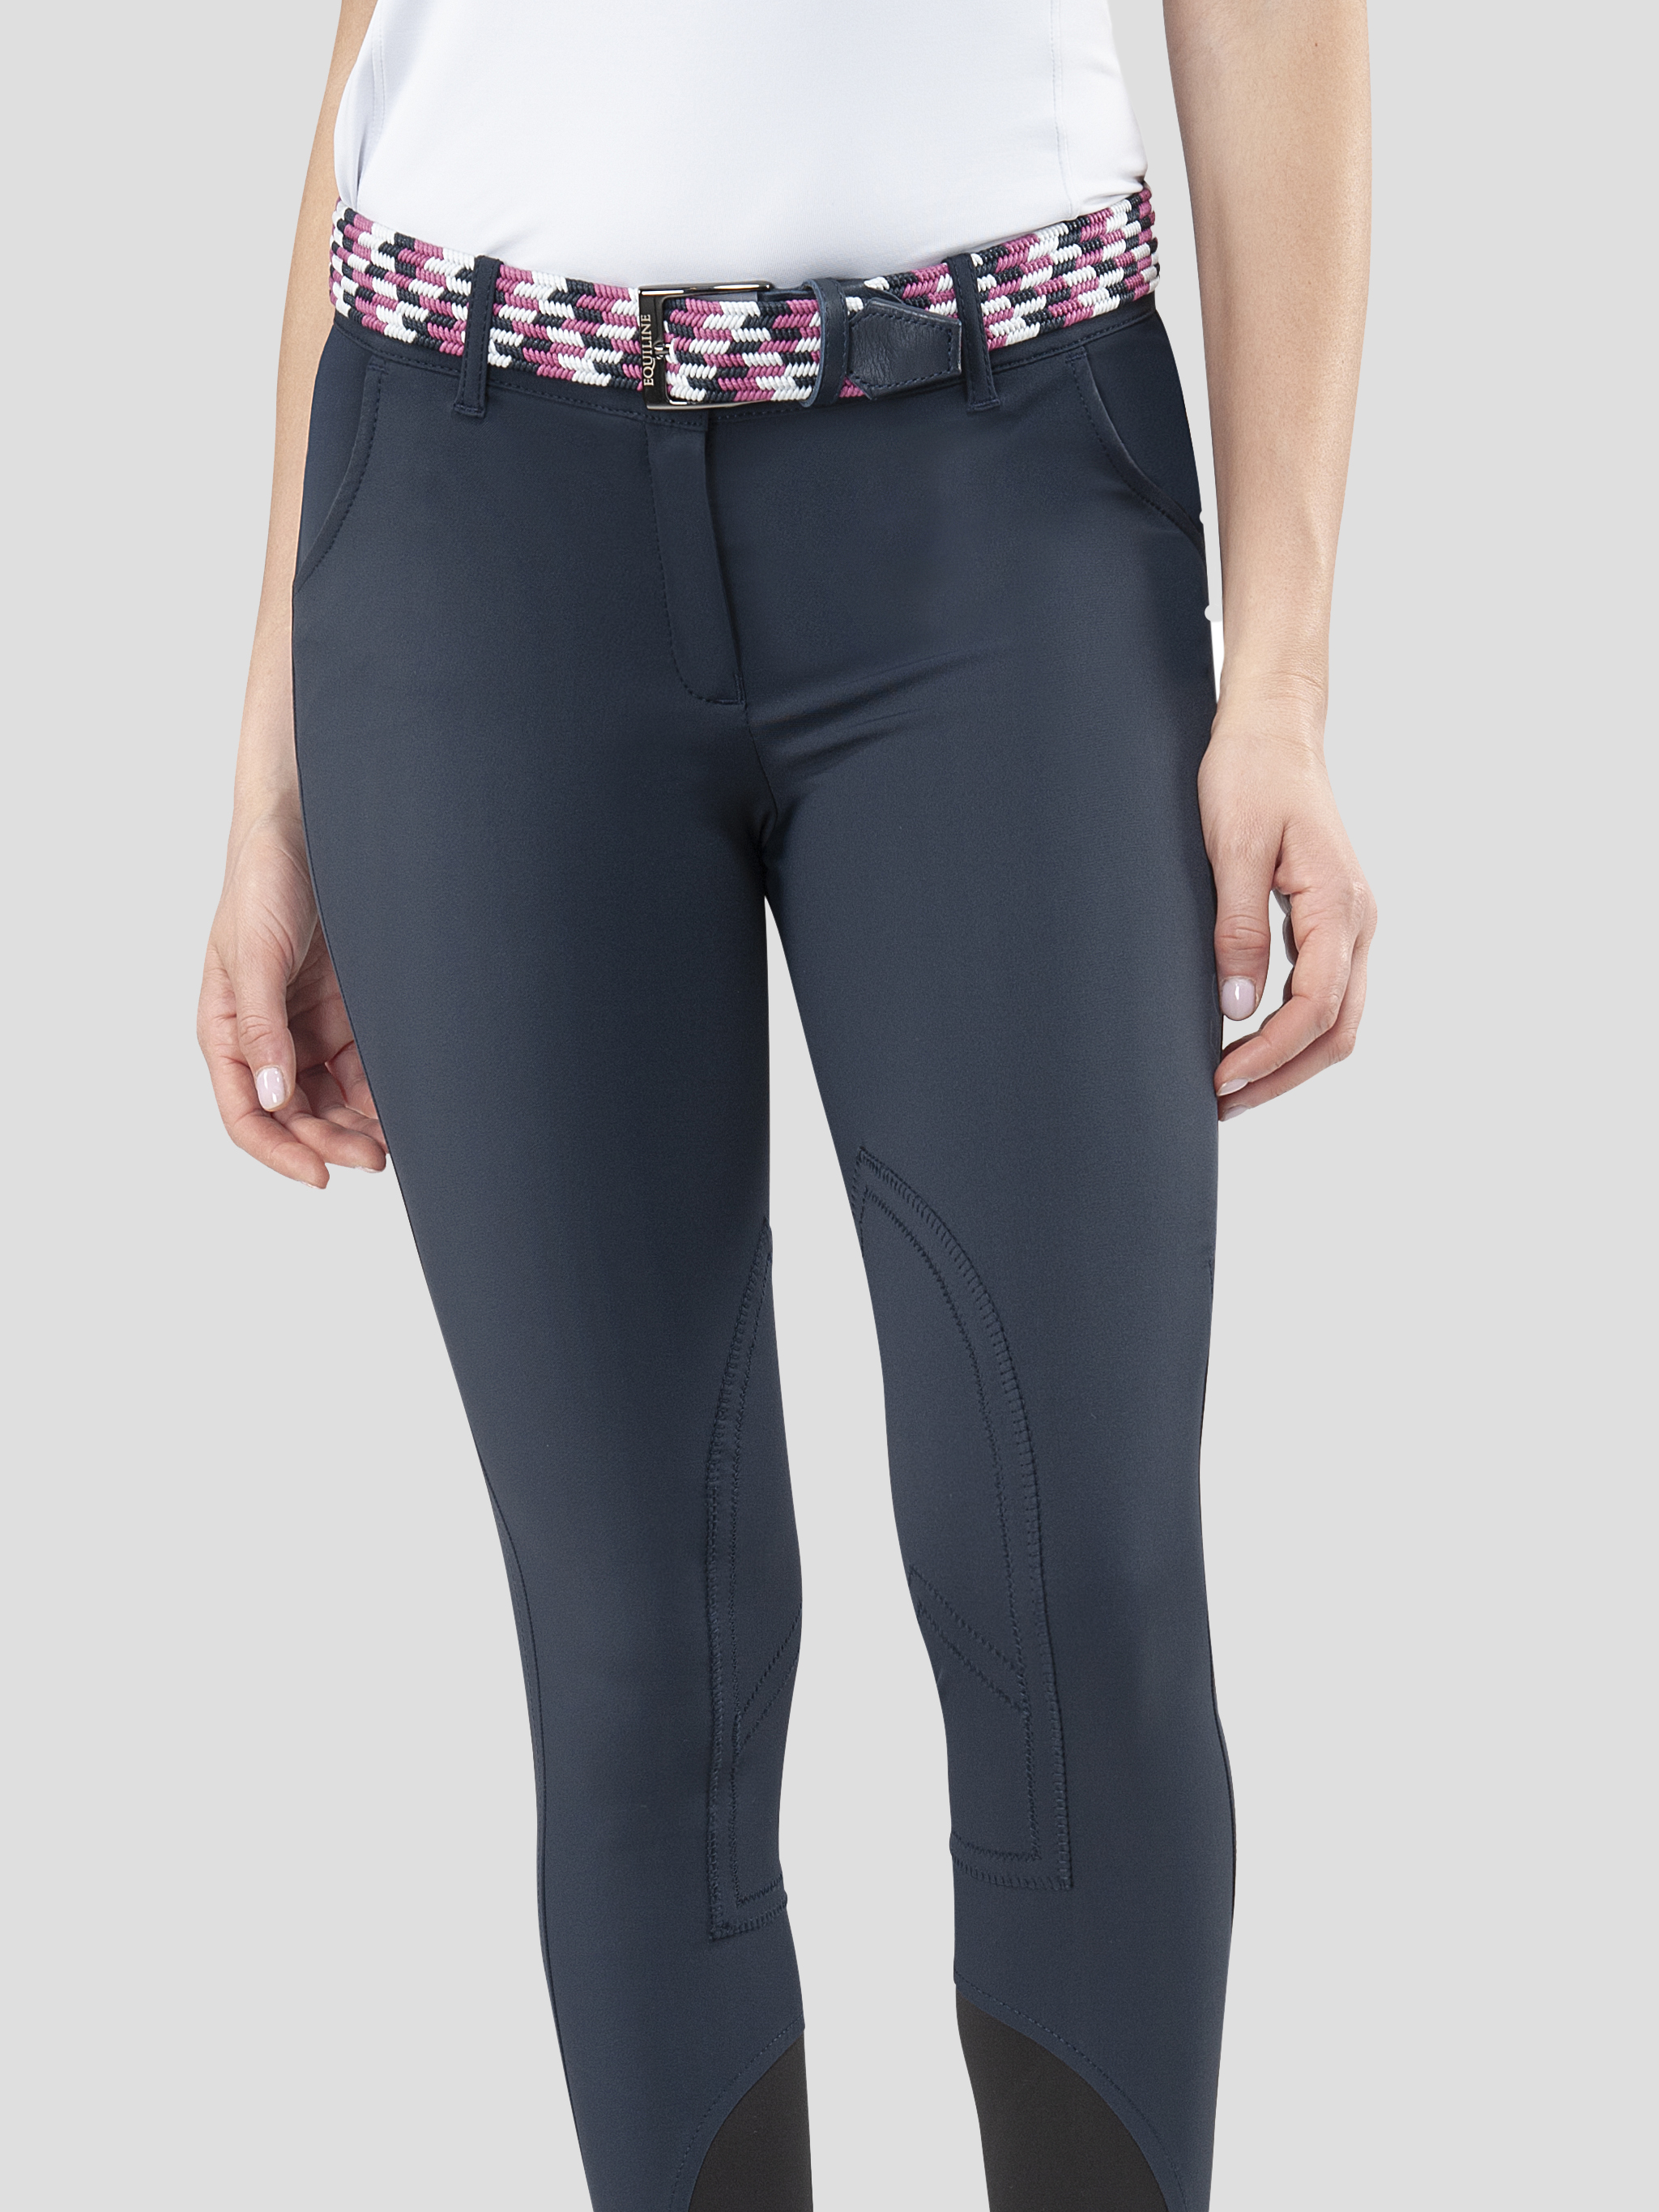 CALAMITY WOMEN'S KNEE PATCH BREECHES IN LEIGHT WEIGHT IN B-MOVE 3